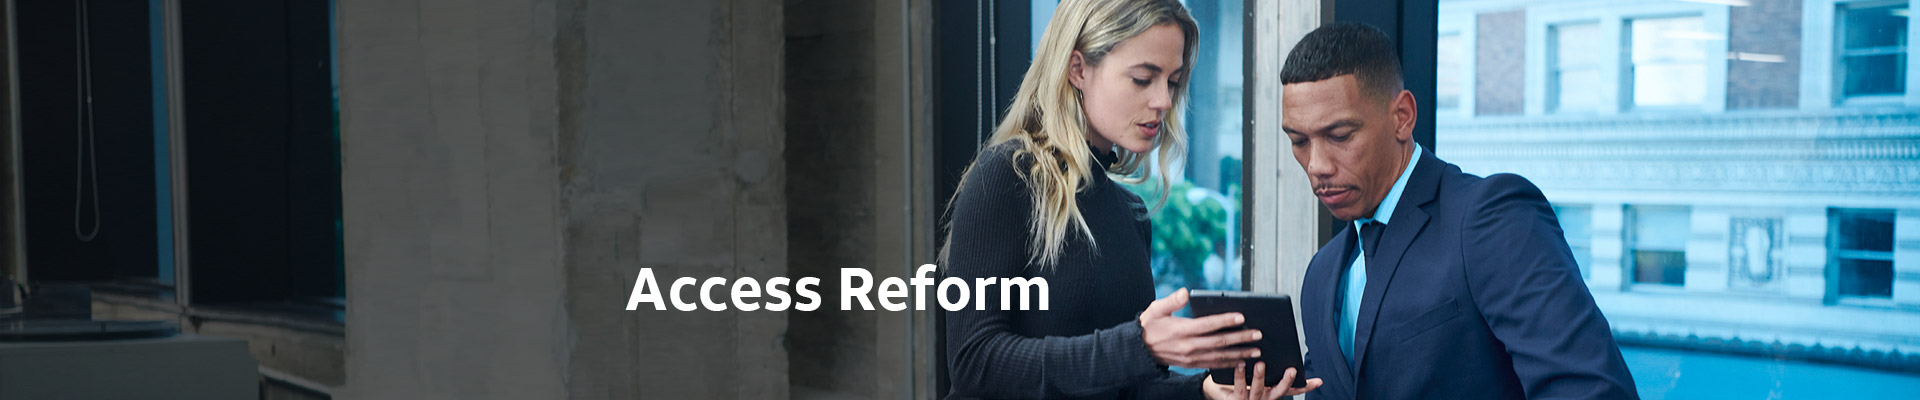 Access Reform - Universal Service and Access Related Charges & Fees